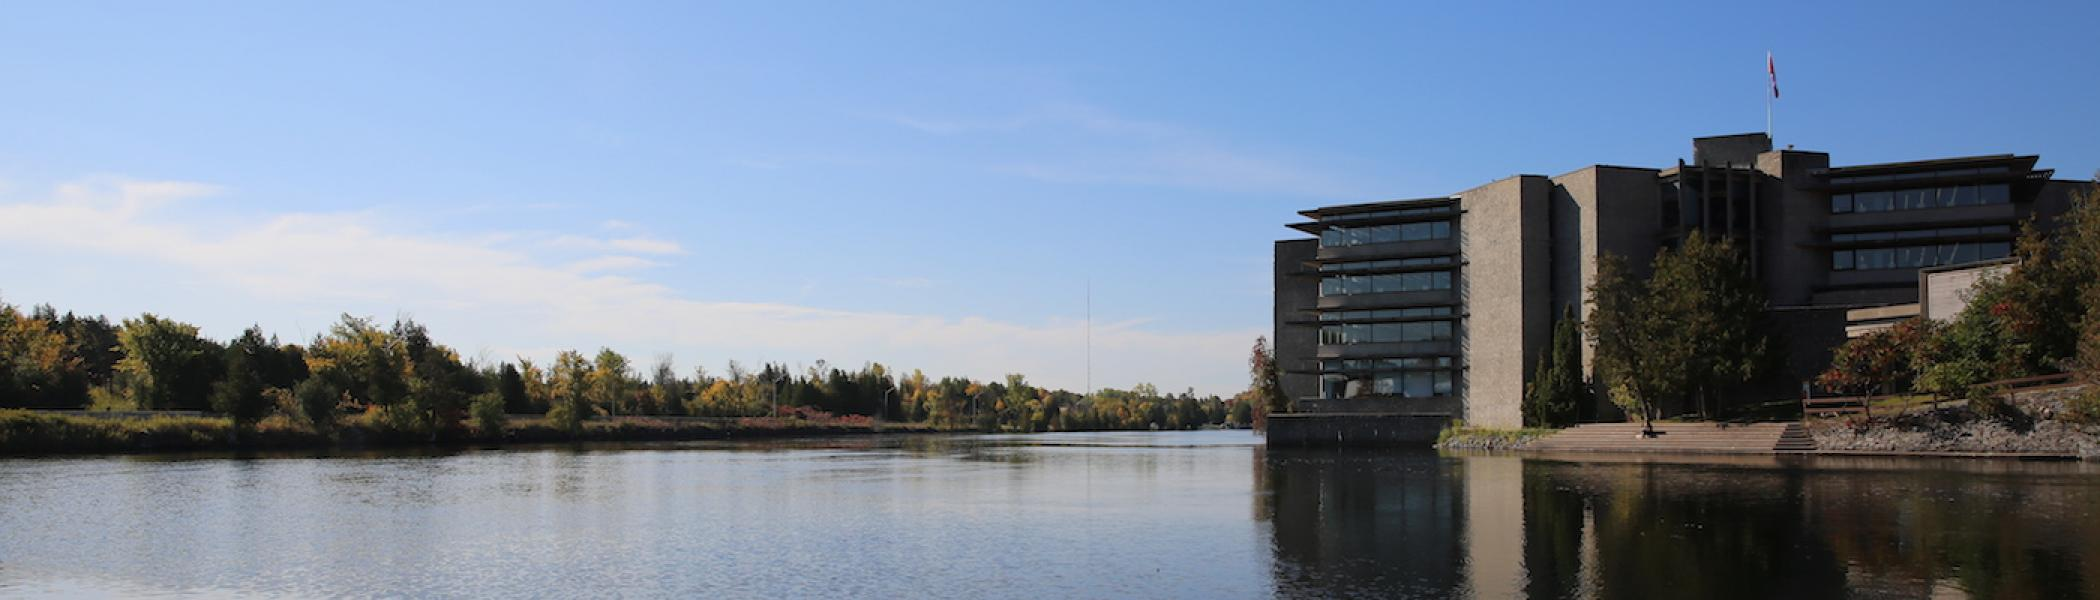 Bata Library in the summer with the Otonabee River on the left side